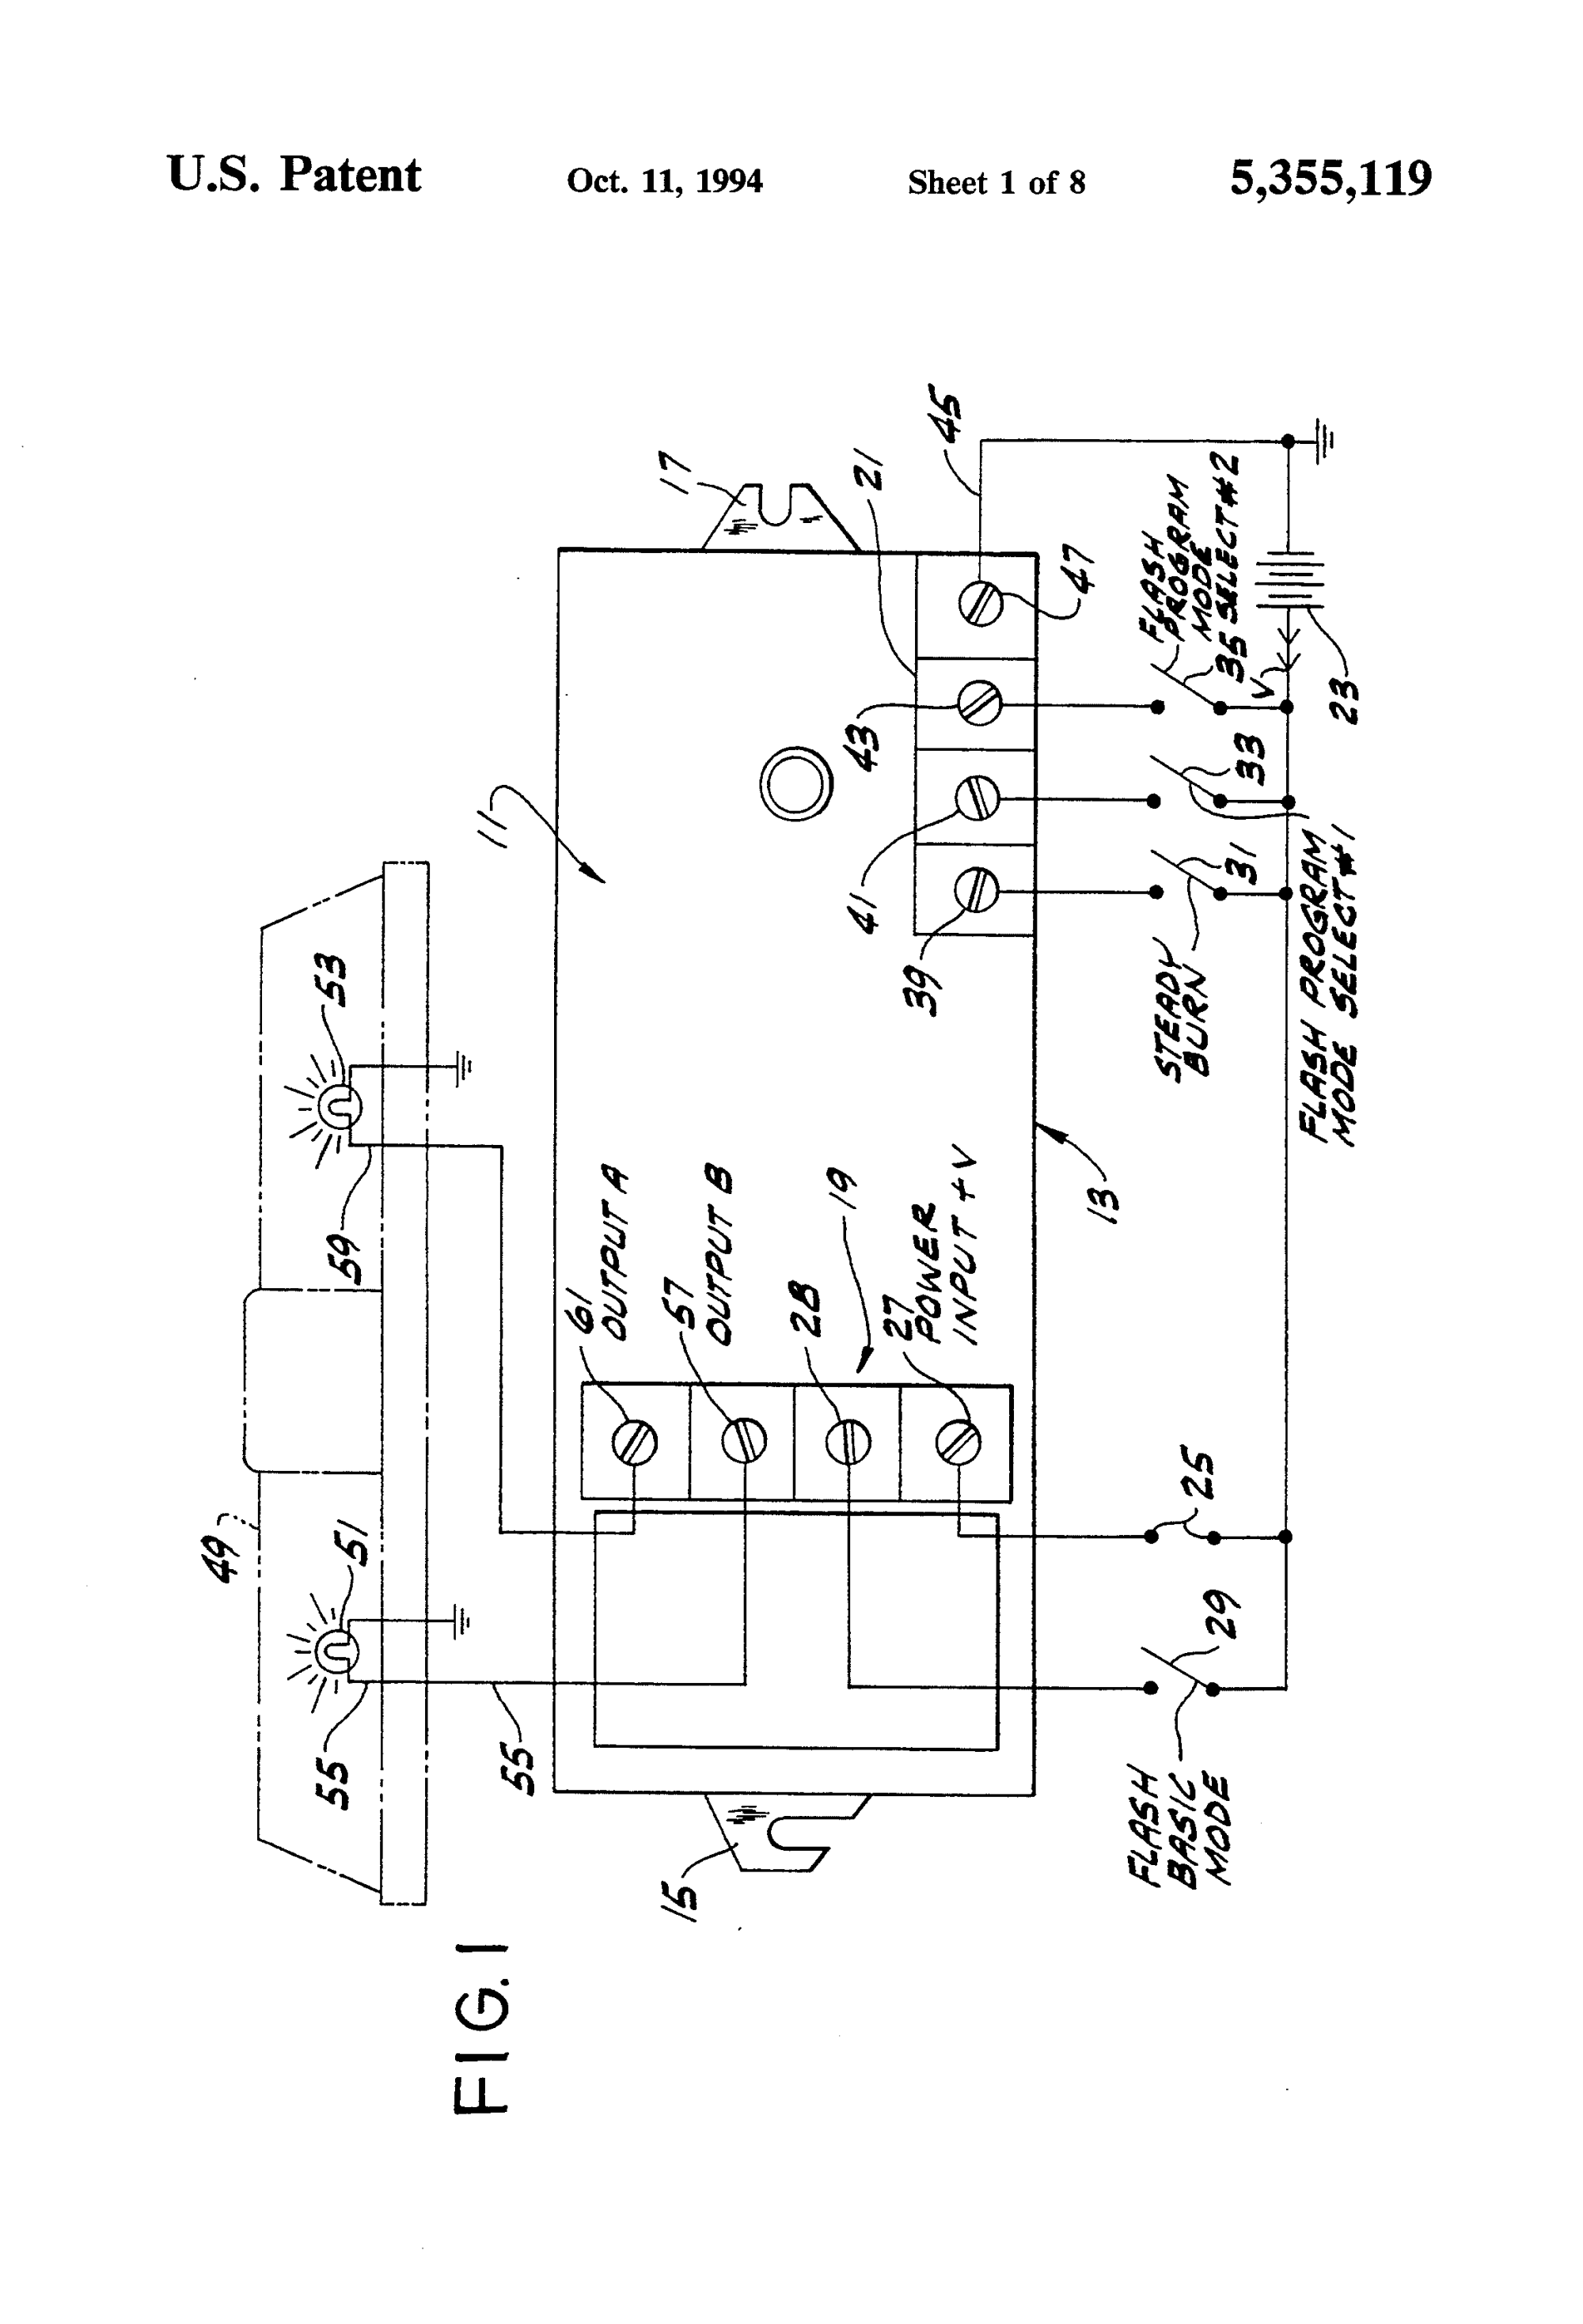 hight resolution of us5355119 1 patent us5355119 apparatus and methods for controlling a signal soundoff headlight flasher wiring diagram